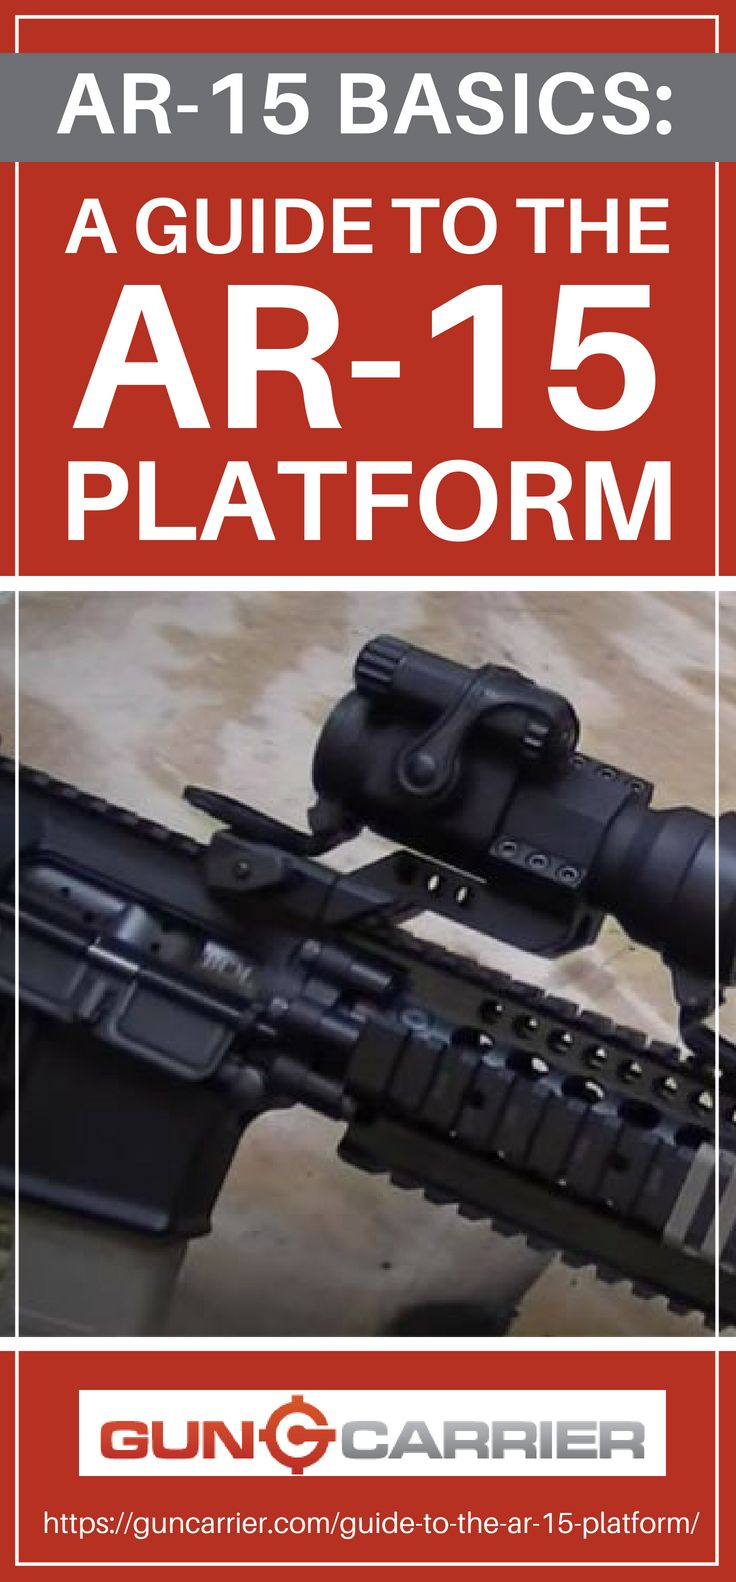 hight resolution of ar 15 basics a guide to the ar 15 platform https